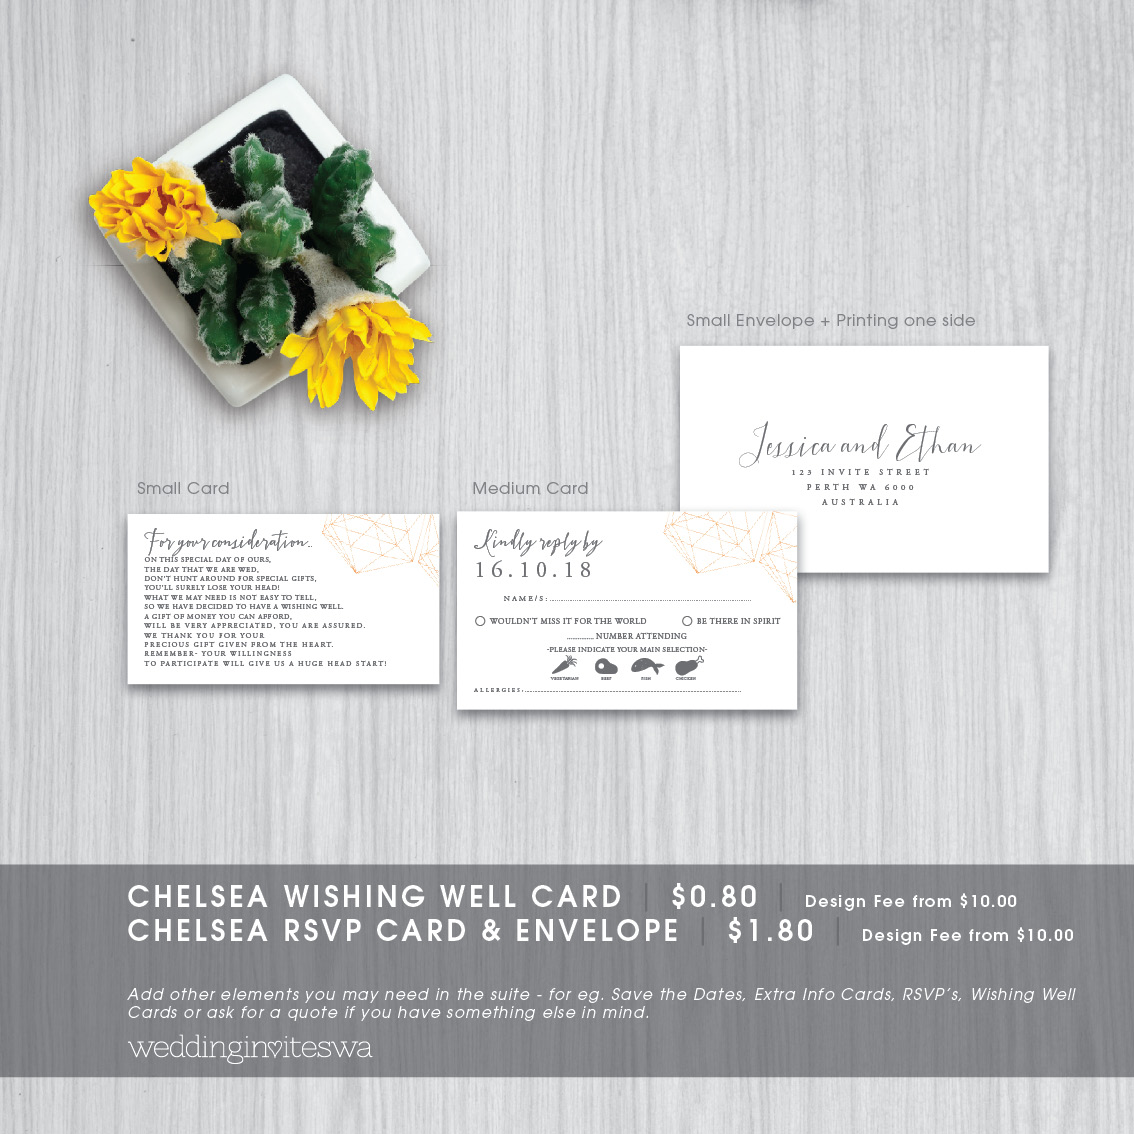 CHELSEA_extra cards